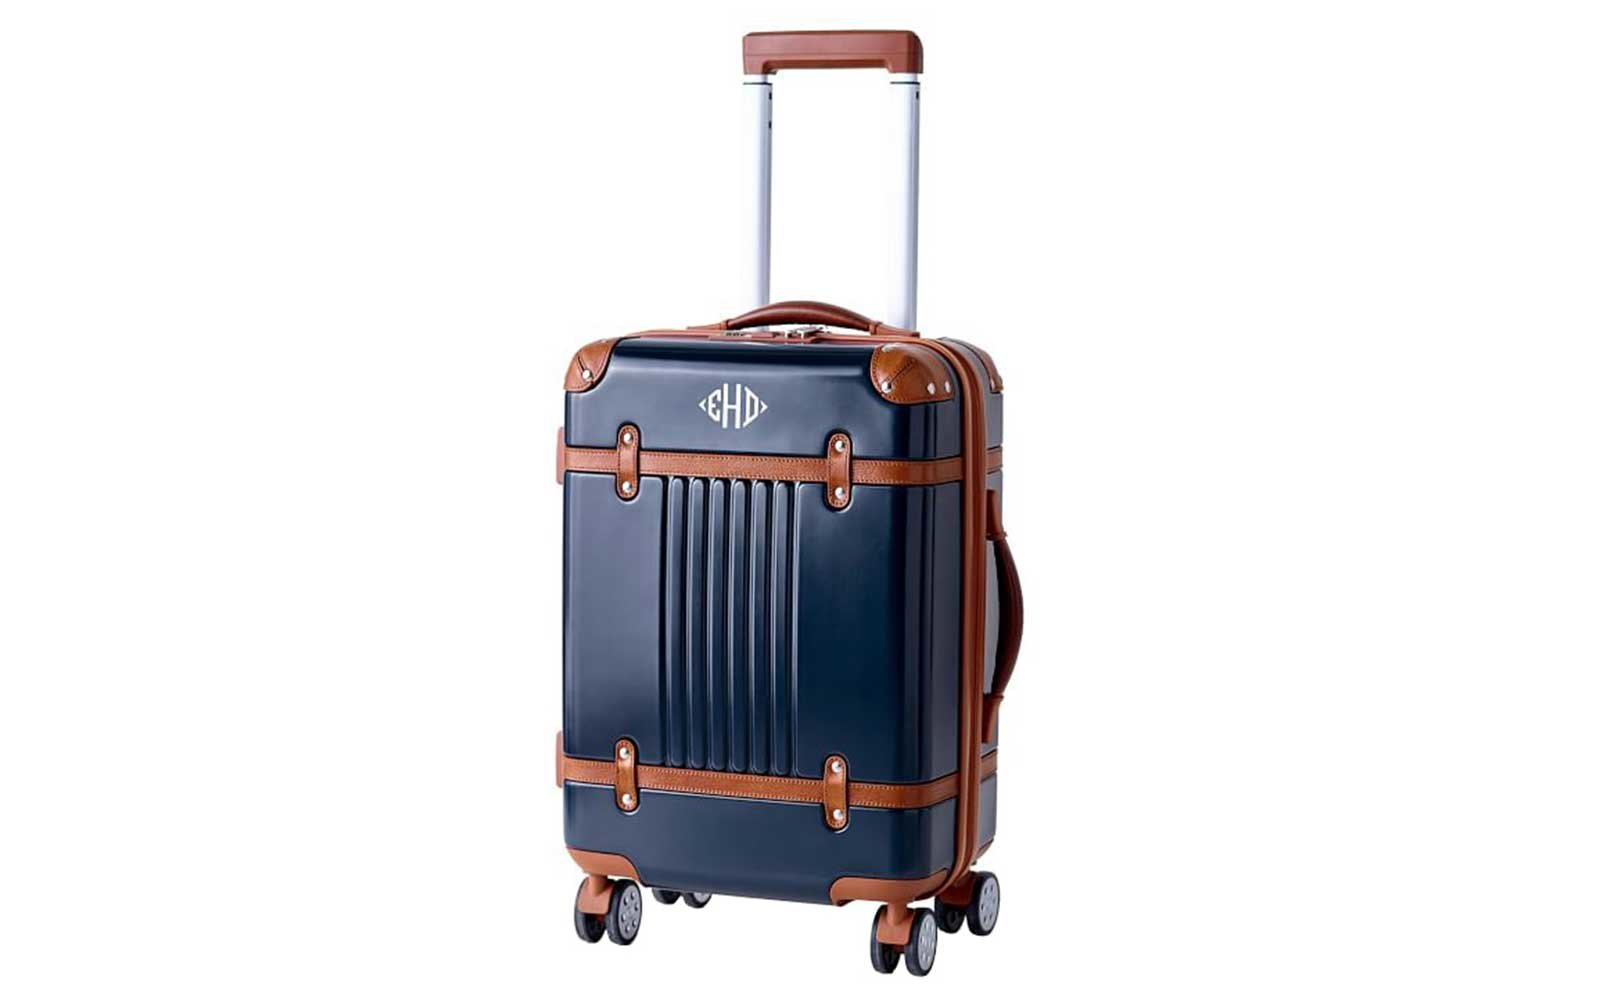 Monogrammed suitcase from Mark & Graham